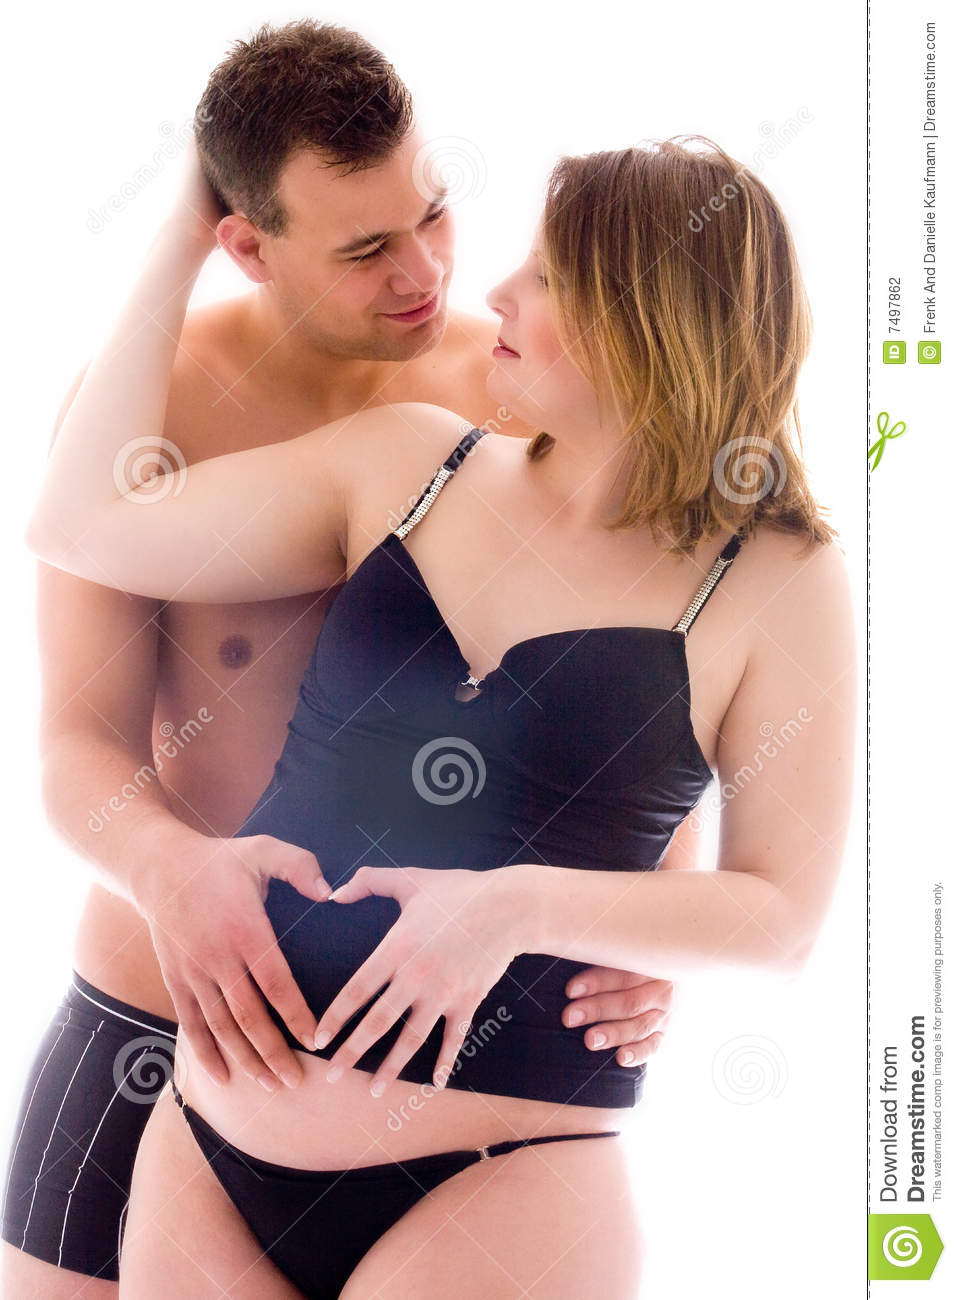 Pregnancy In Lingerie Stock Photography - Image: 7497862